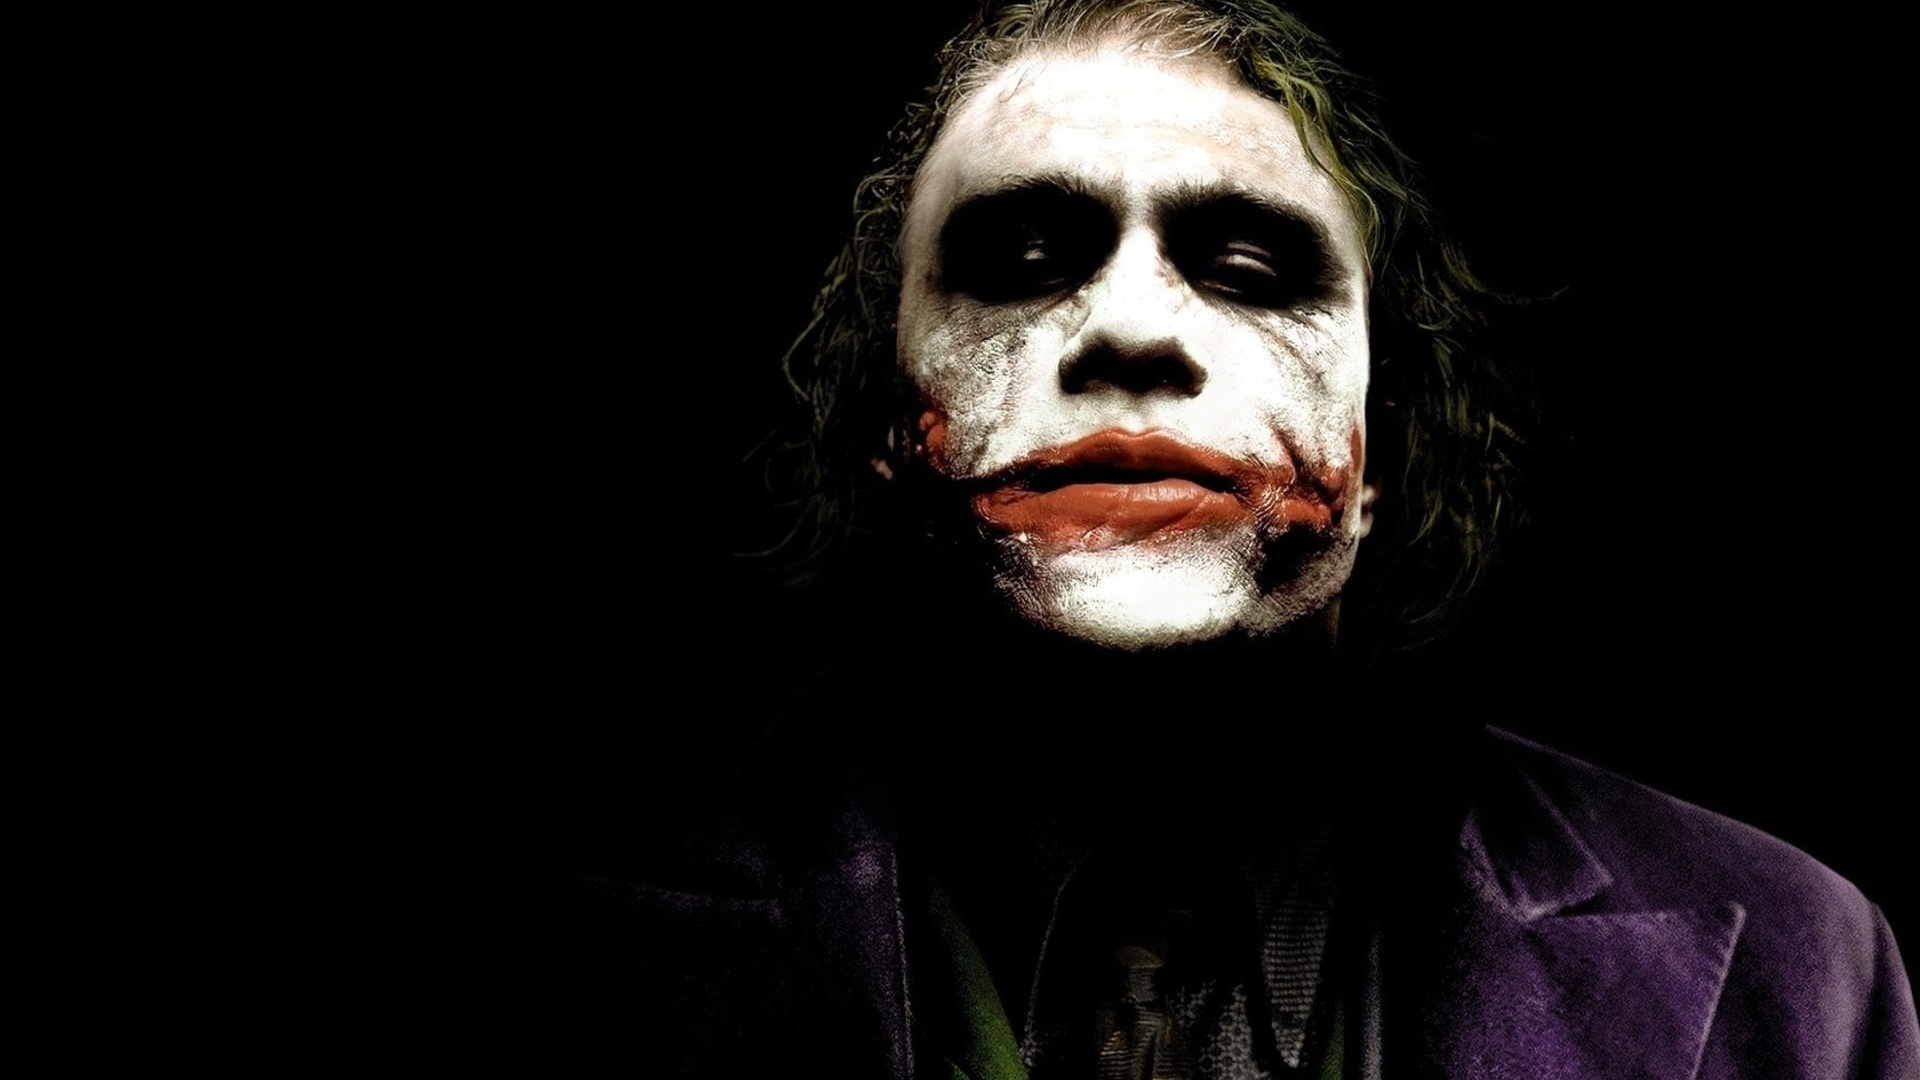 HD Heath Ledger Joker Wallpaper Download High Resolution 1920x1080